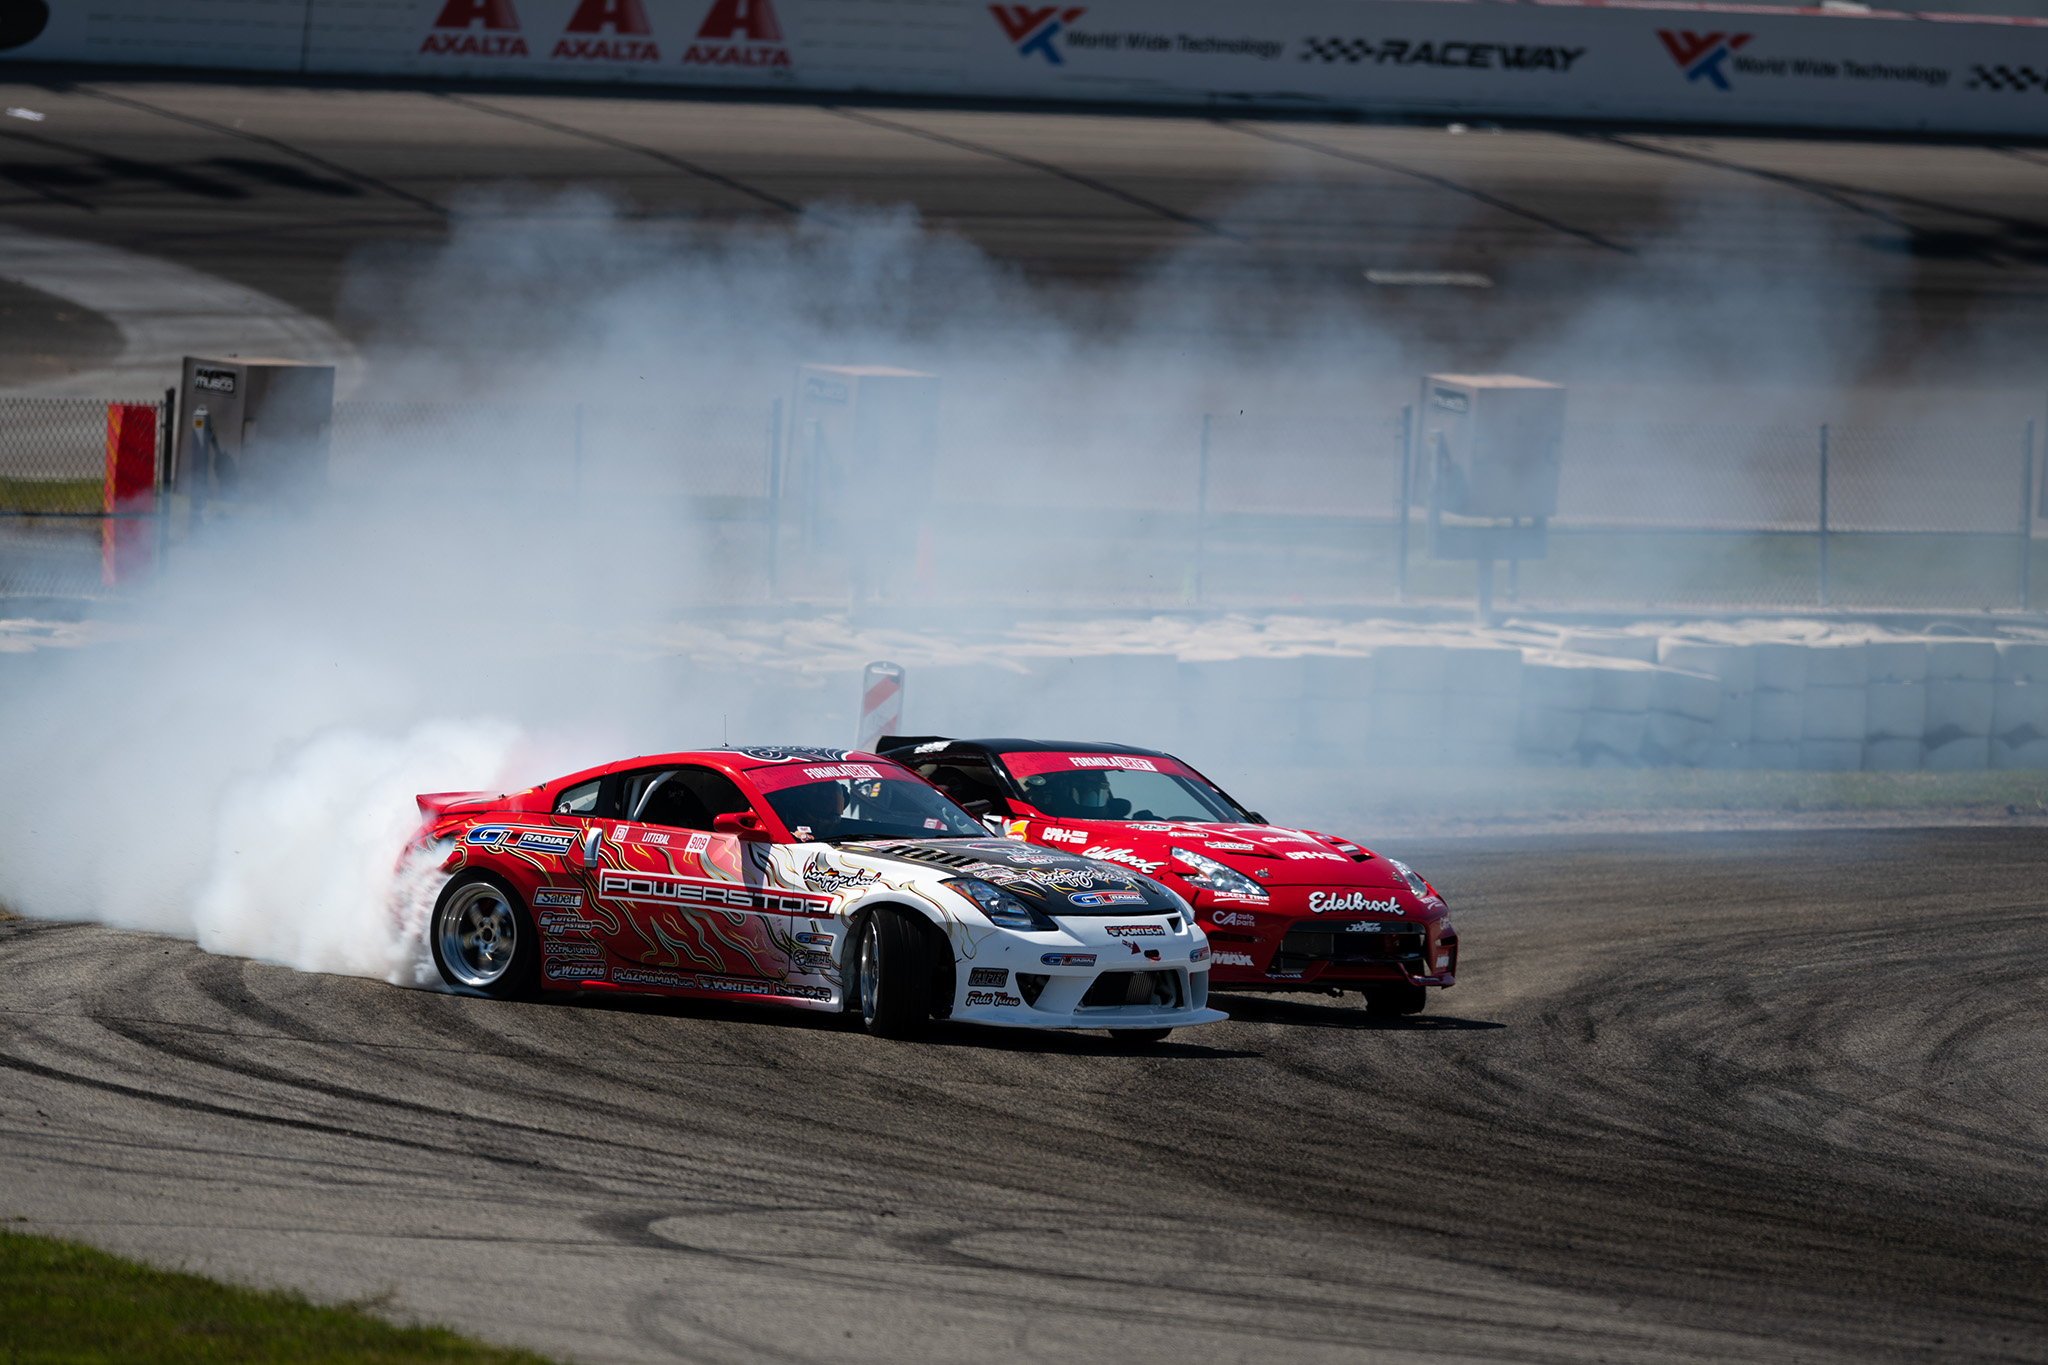 Ryan Litteral and Jeff Jones Nissan 350Z 370Z tandem drifting at Formula D Pro drifting championship 2020 double header Round 1 at St. Louis, motorsports photography by Luke Munnell